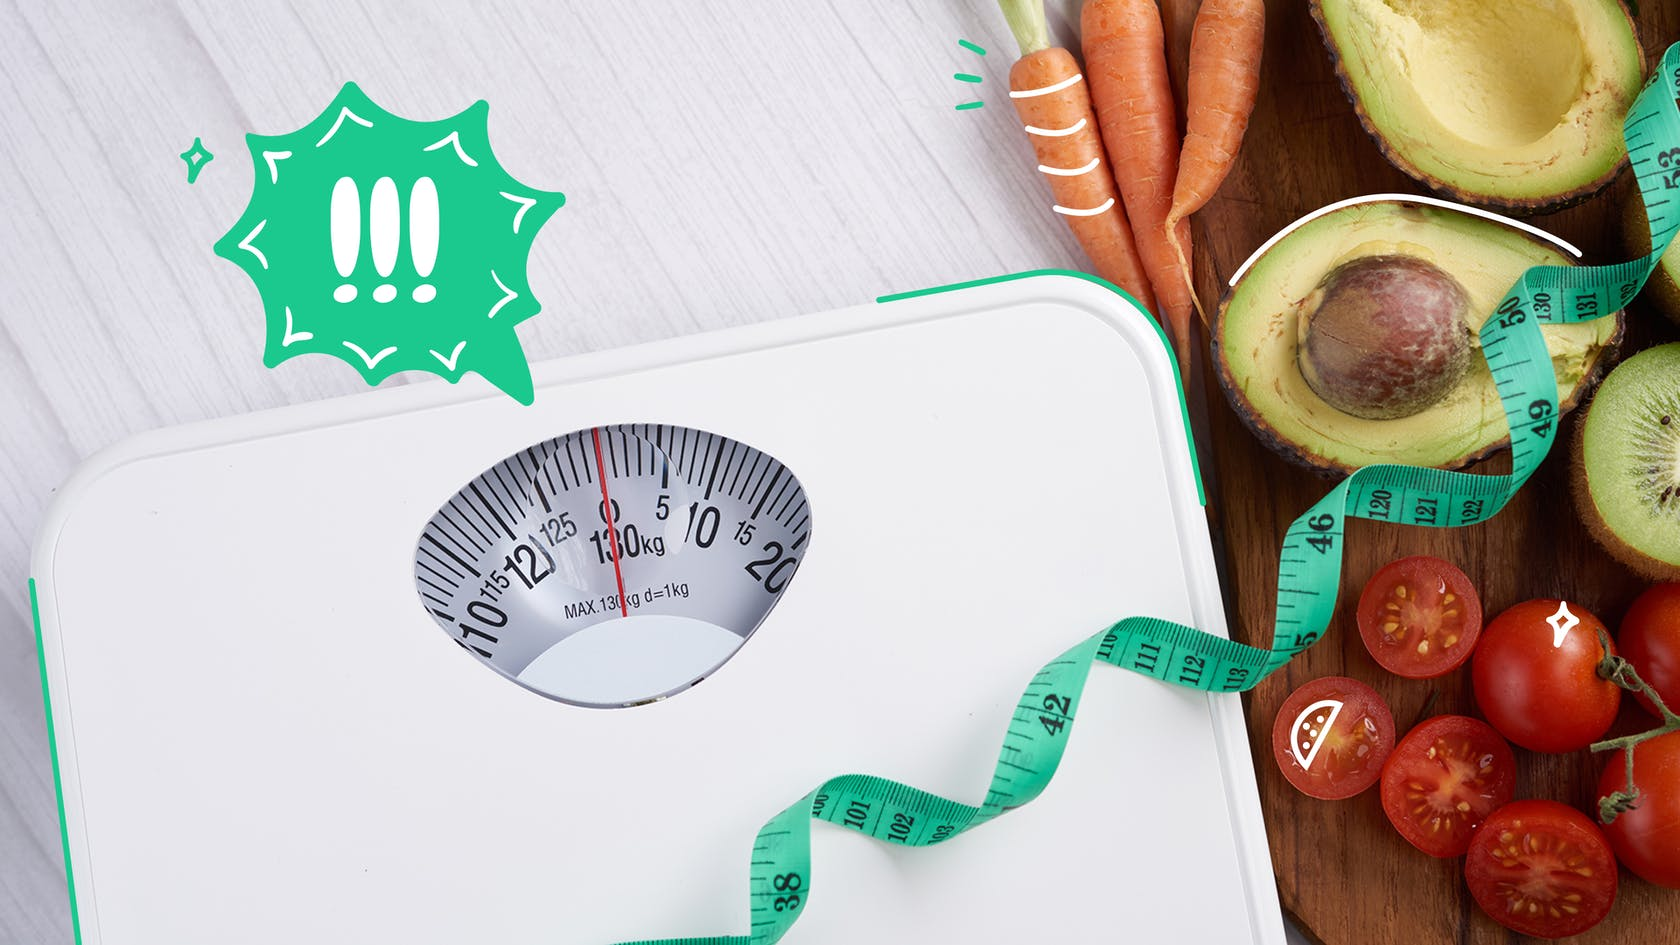 4 Reasons Most Diets Fail (And How To Make Yours Work)